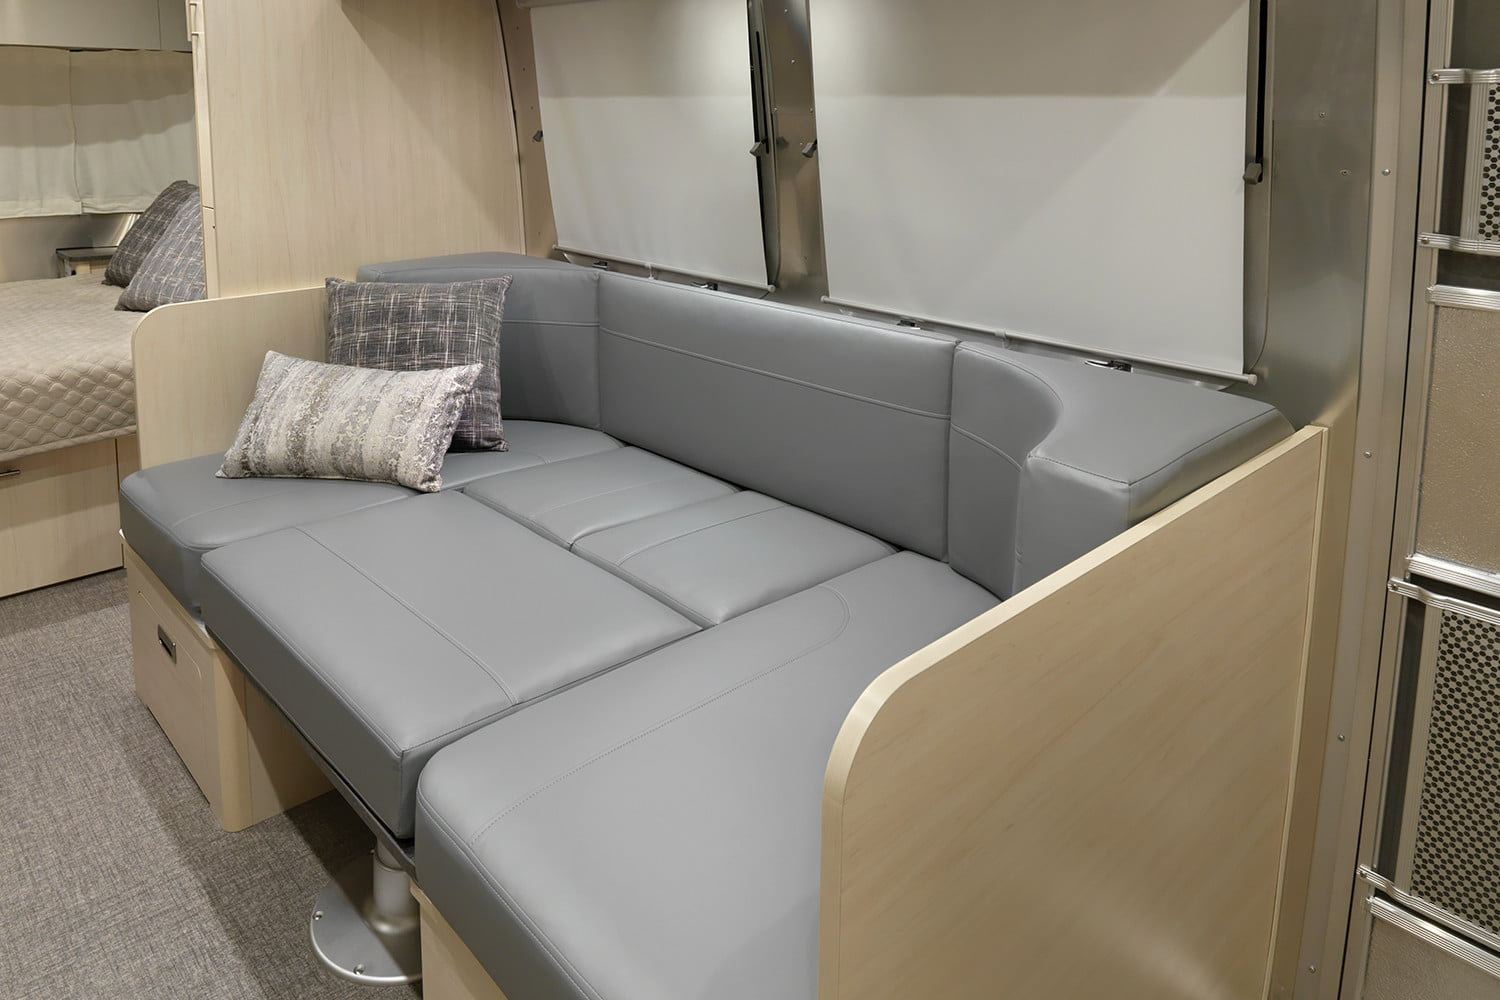 airstream flying cloud international updates 2021 23fb interior daybed sunlit maple seattle mist 80701 web